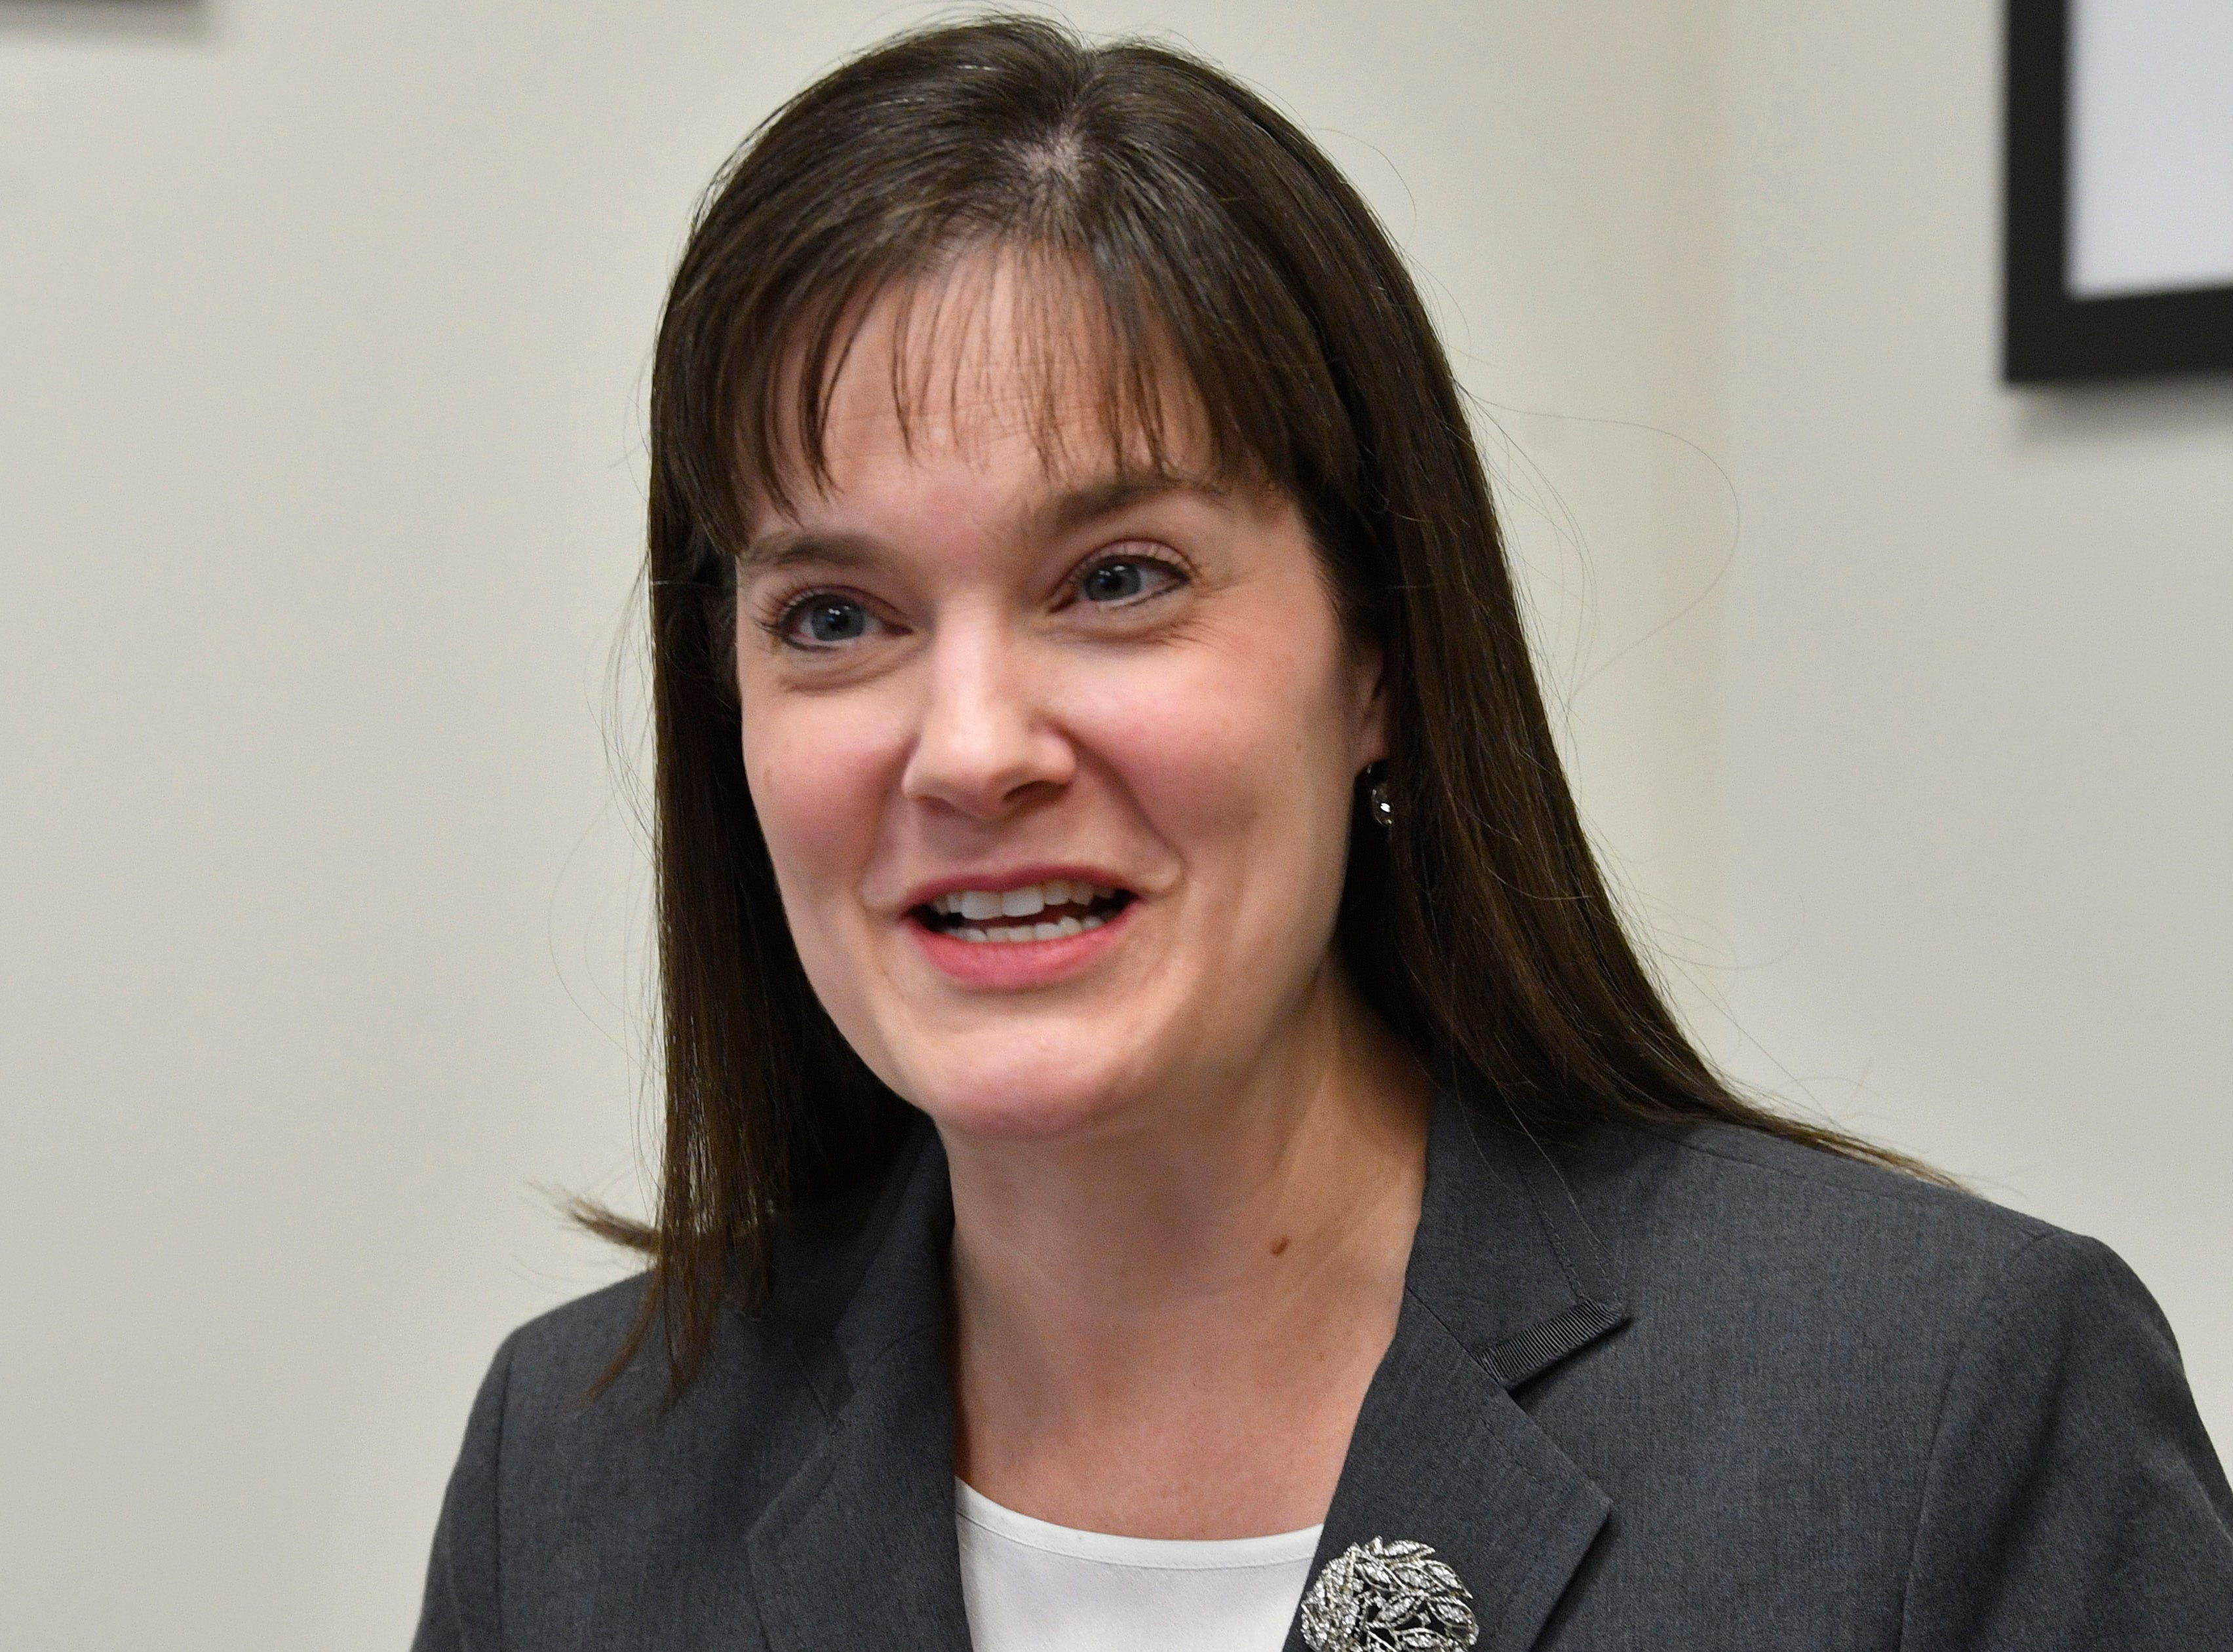 Why TNReady is Candice McQueen's biggest regret as Tennessee education commissioner